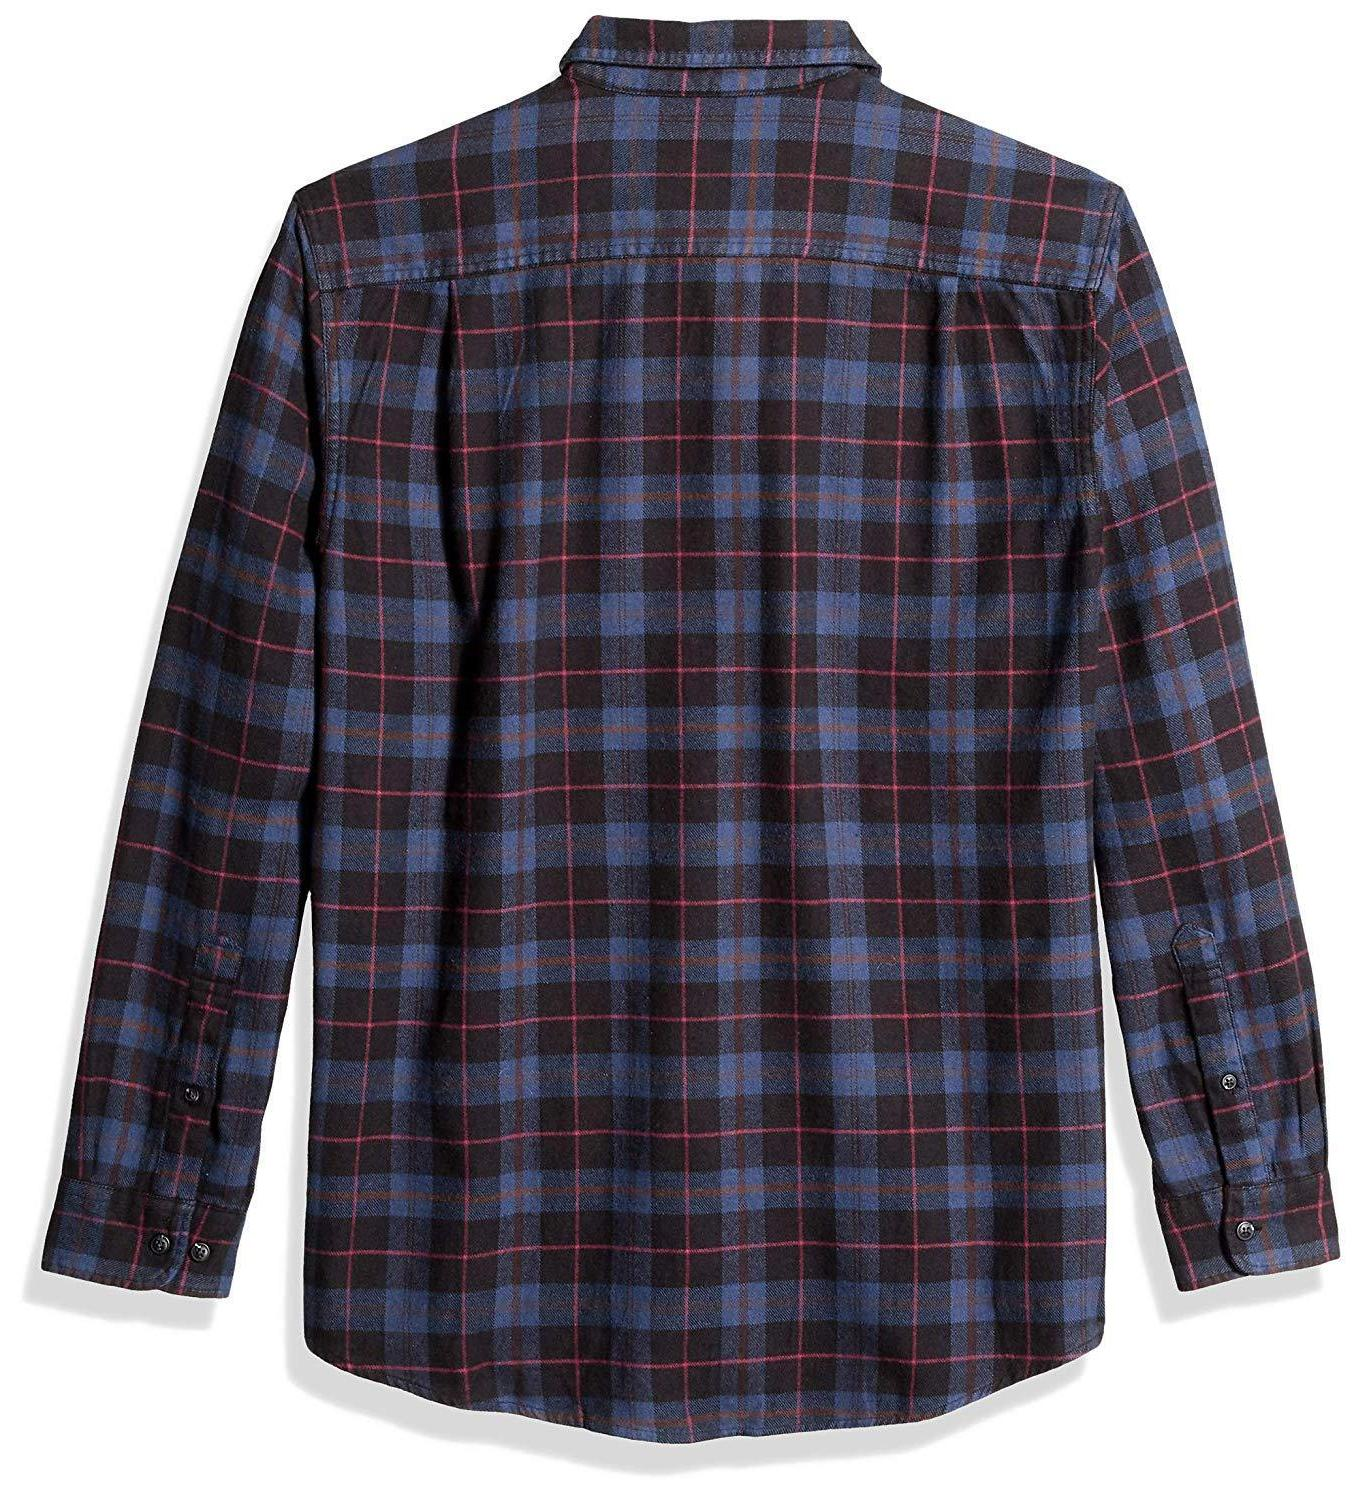 Amazon Essentials Men's Regular-Fit Long-Sleeve Plaid Shirt